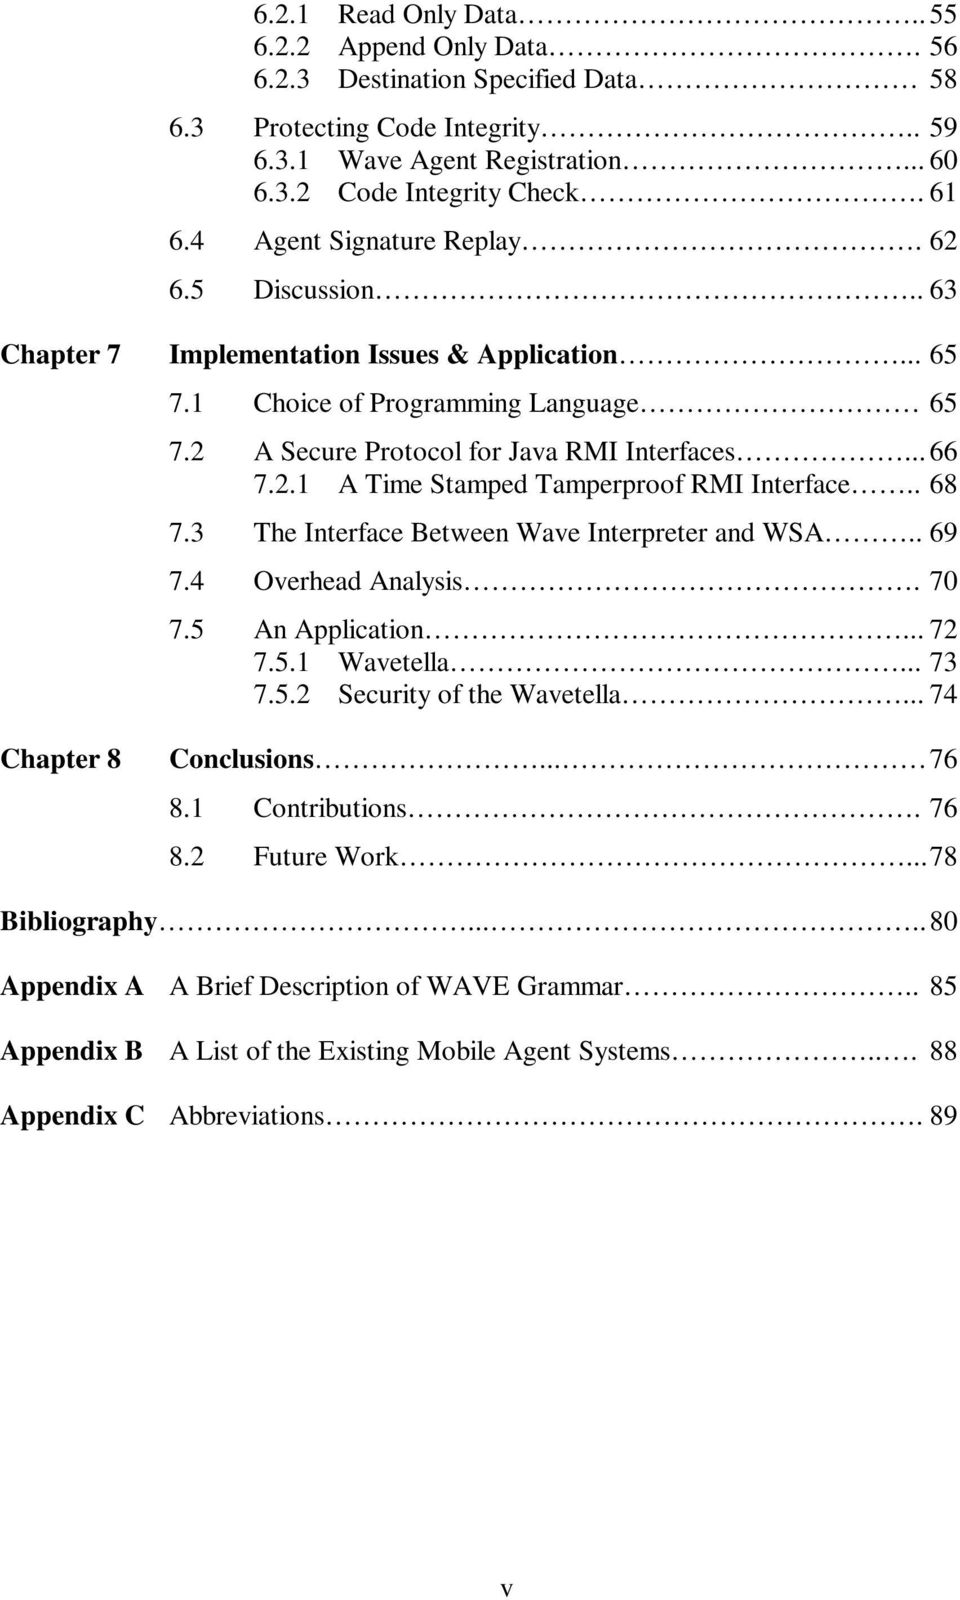 . 68 7.3 The Interface Between Wave Interpreter and WSA.. 69 7.4 Overhead Analysis. 70 7.5 An Application... 72 7.5.1 Wavetella... 73 7.5.2 Security of the Wavetella... 74 Chapter 8 Conclusions... 76 8.